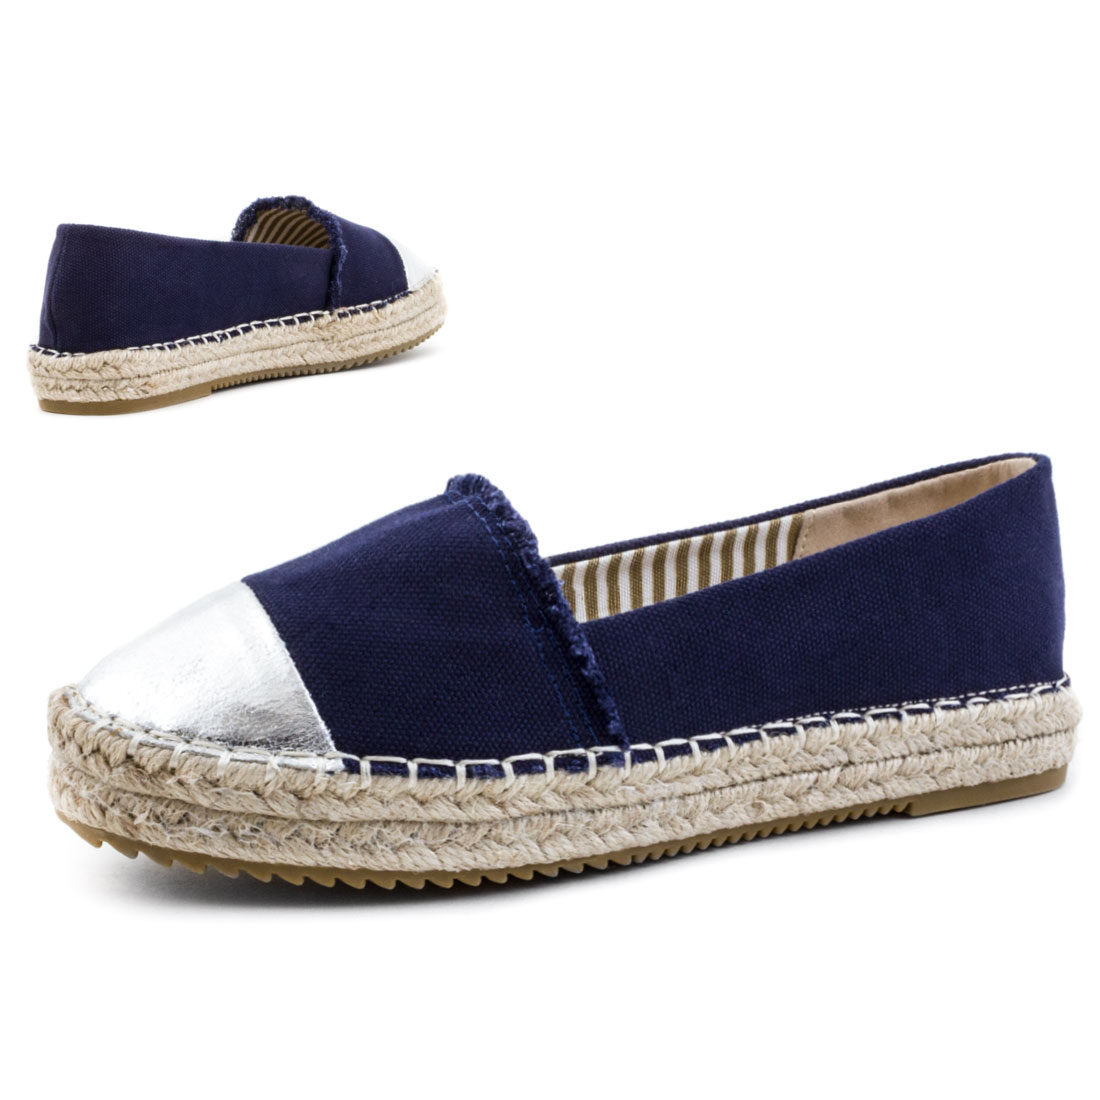 neu damen sommer espadrilles canvas slipper bast schuhe gr 36 37 38 39 40 41 ebay. Black Bedroom Furniture Sets. Home Design Ideas